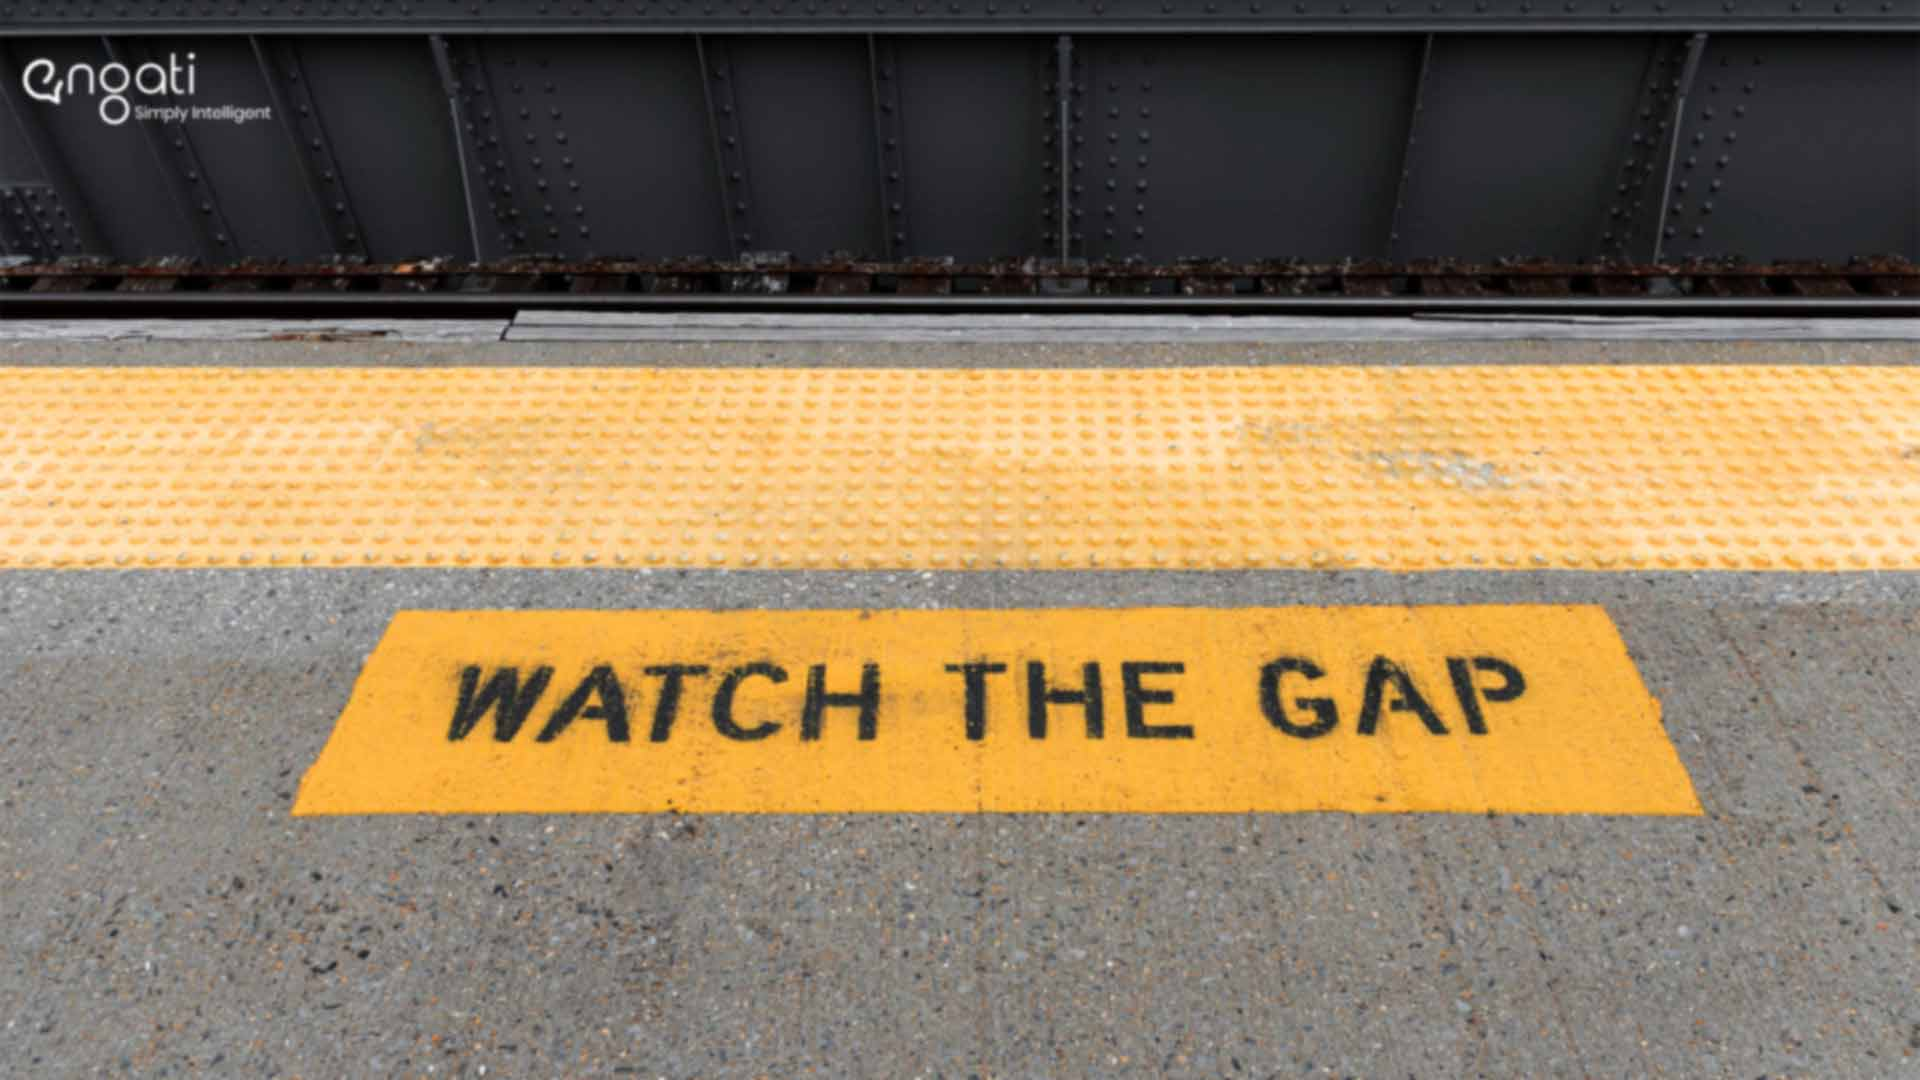 Don't let your customers fall in the expected experiences gap